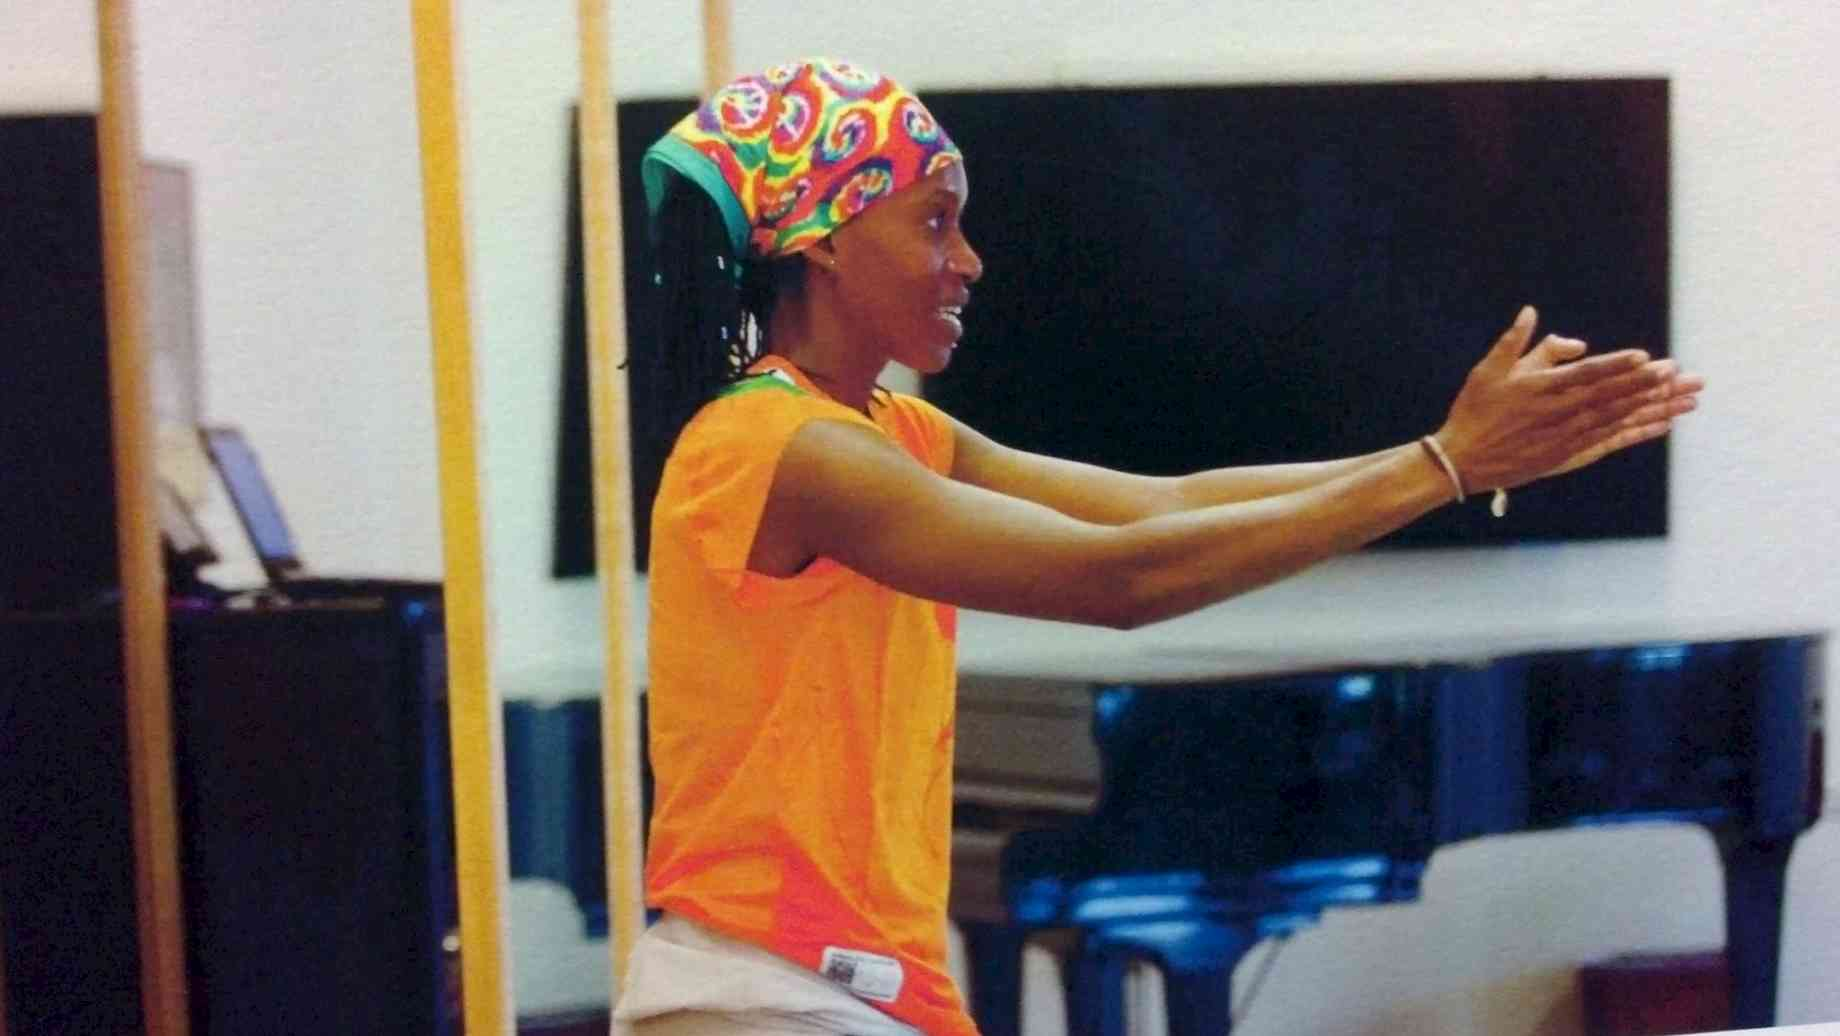 As part of the Africa Contemporary Arts Consortium, Barakissa participated in the Bates Dance Festival, Lewiston Maine, Summer 2013.